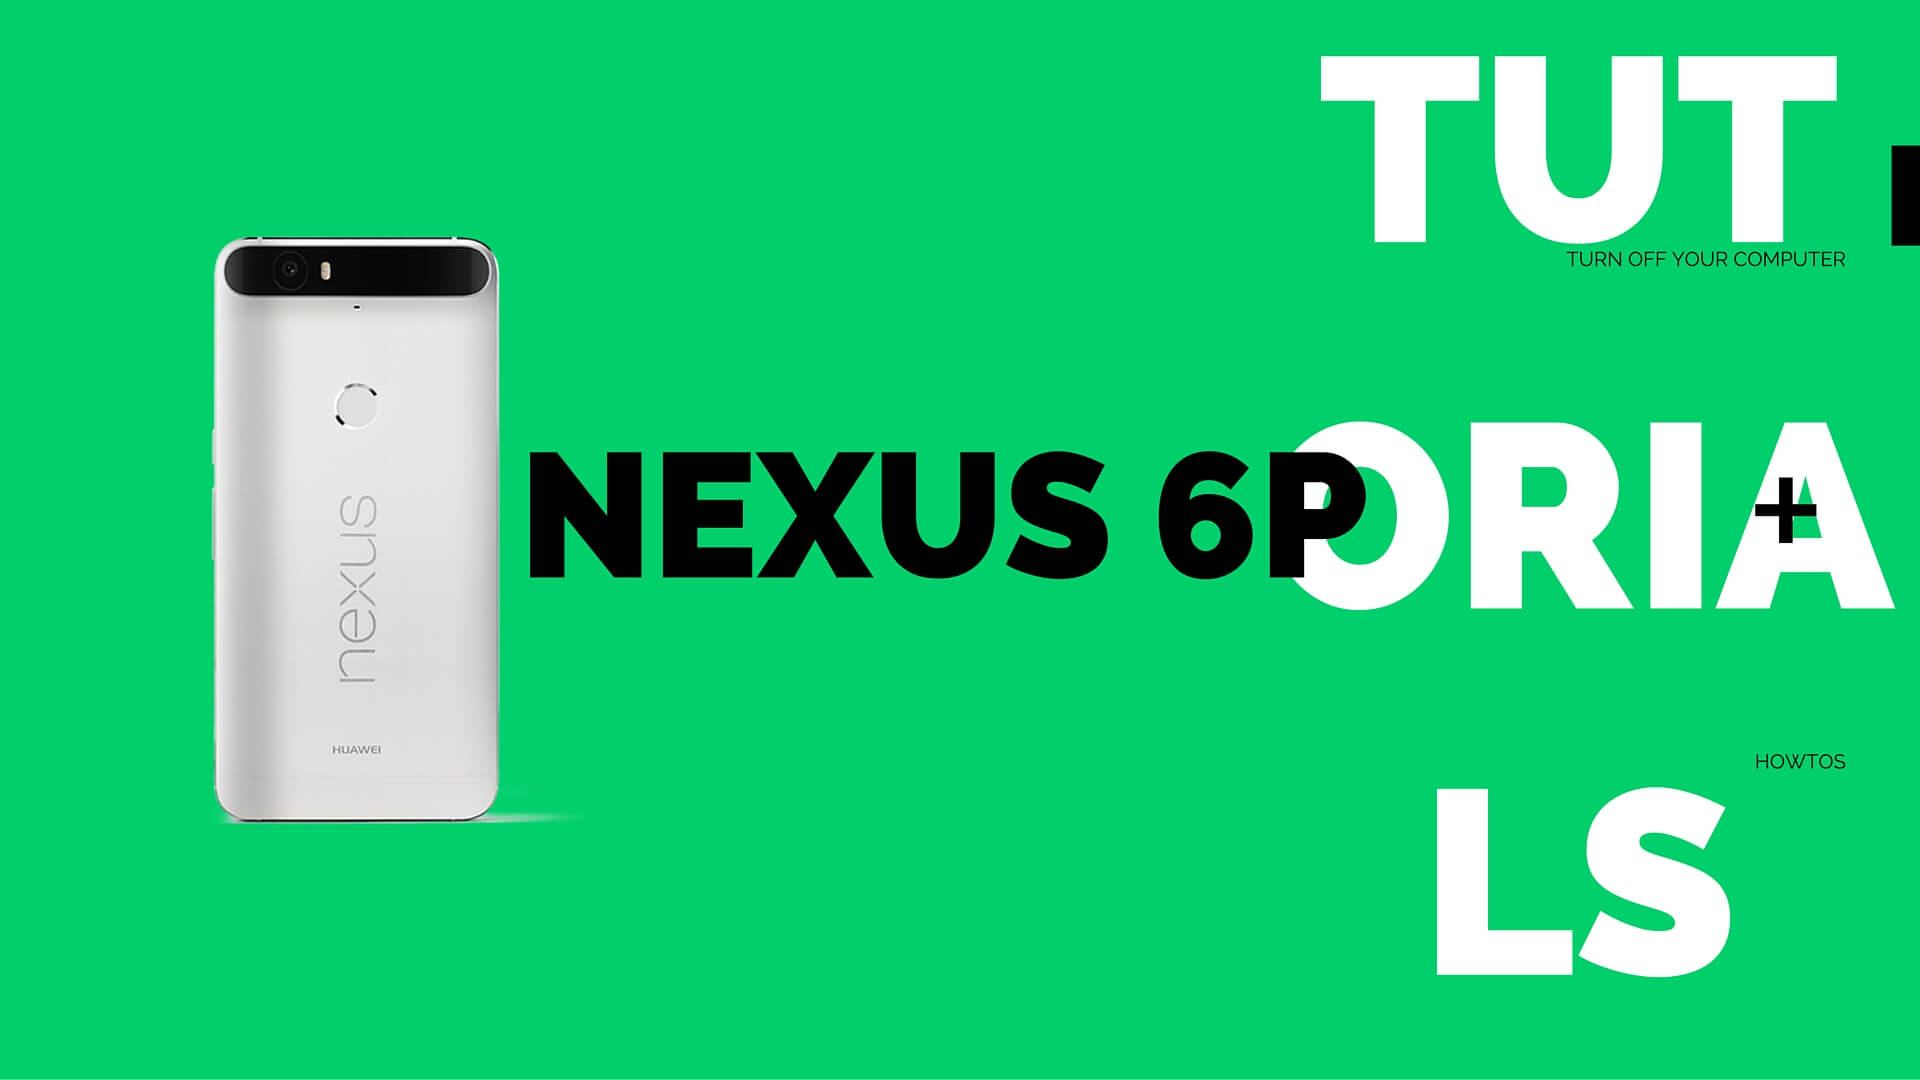 Nexus 6P Tutorials